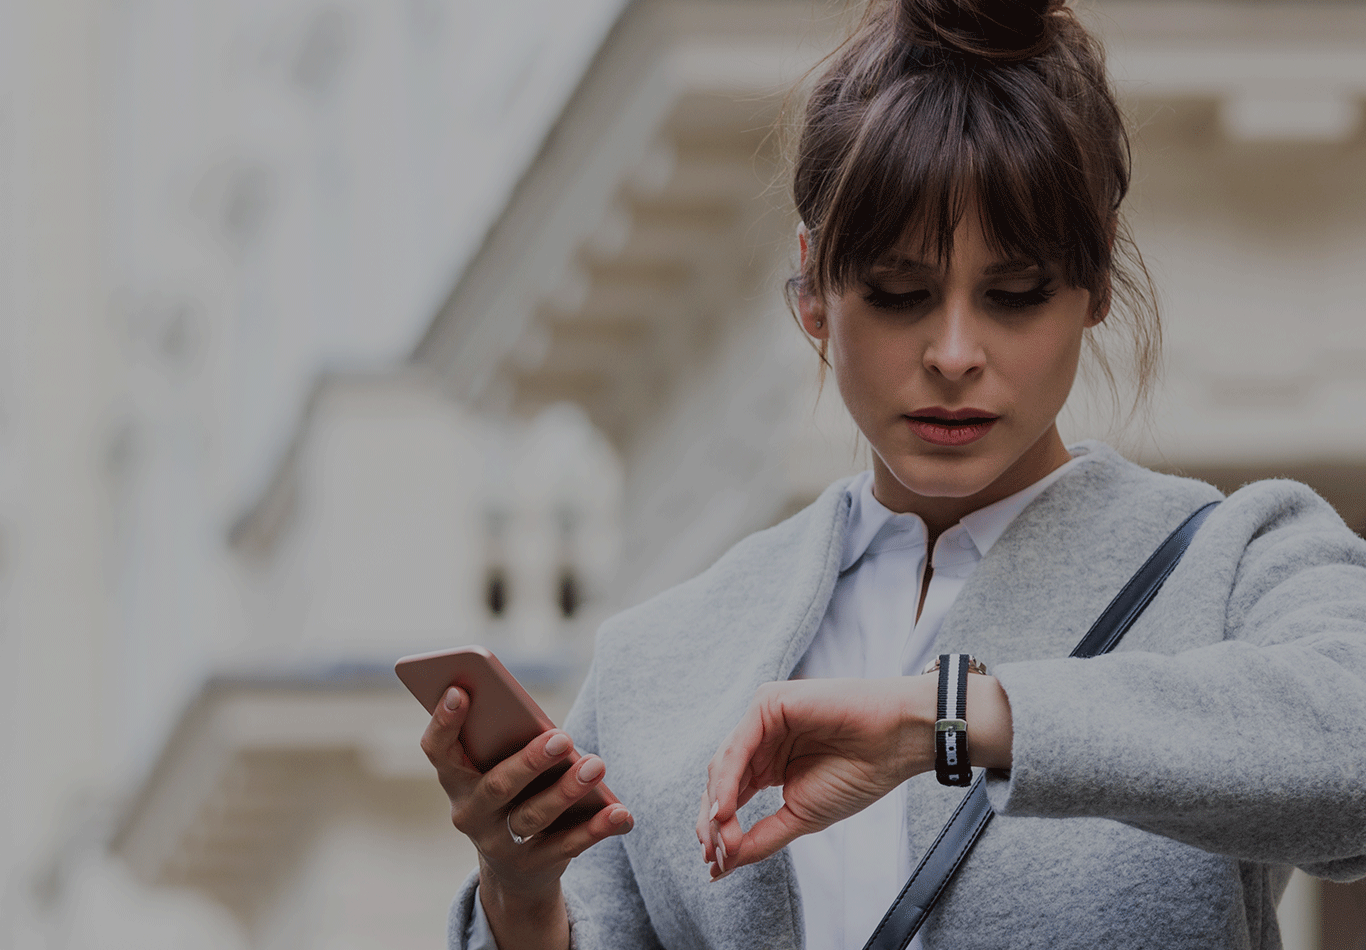 Woman in business attire looking down at watch and holding a smartphone.